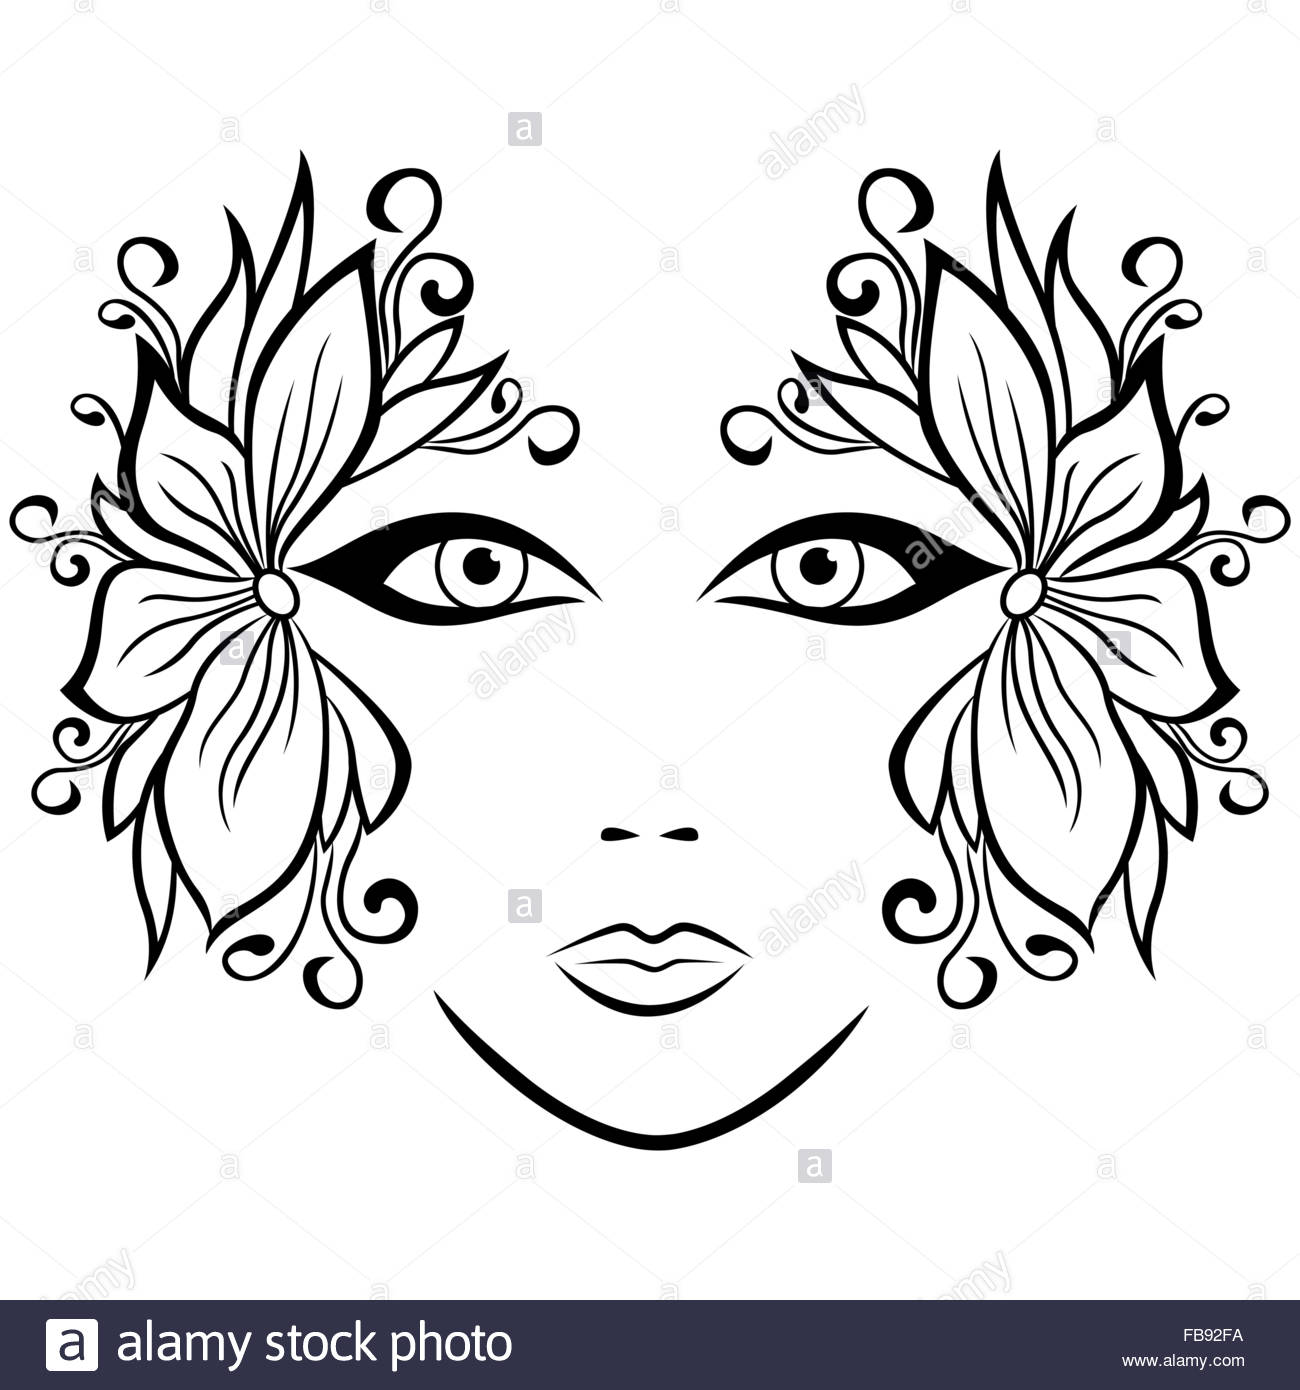 1300x1390 Abstract Black And White Female Face With Ornate Floral